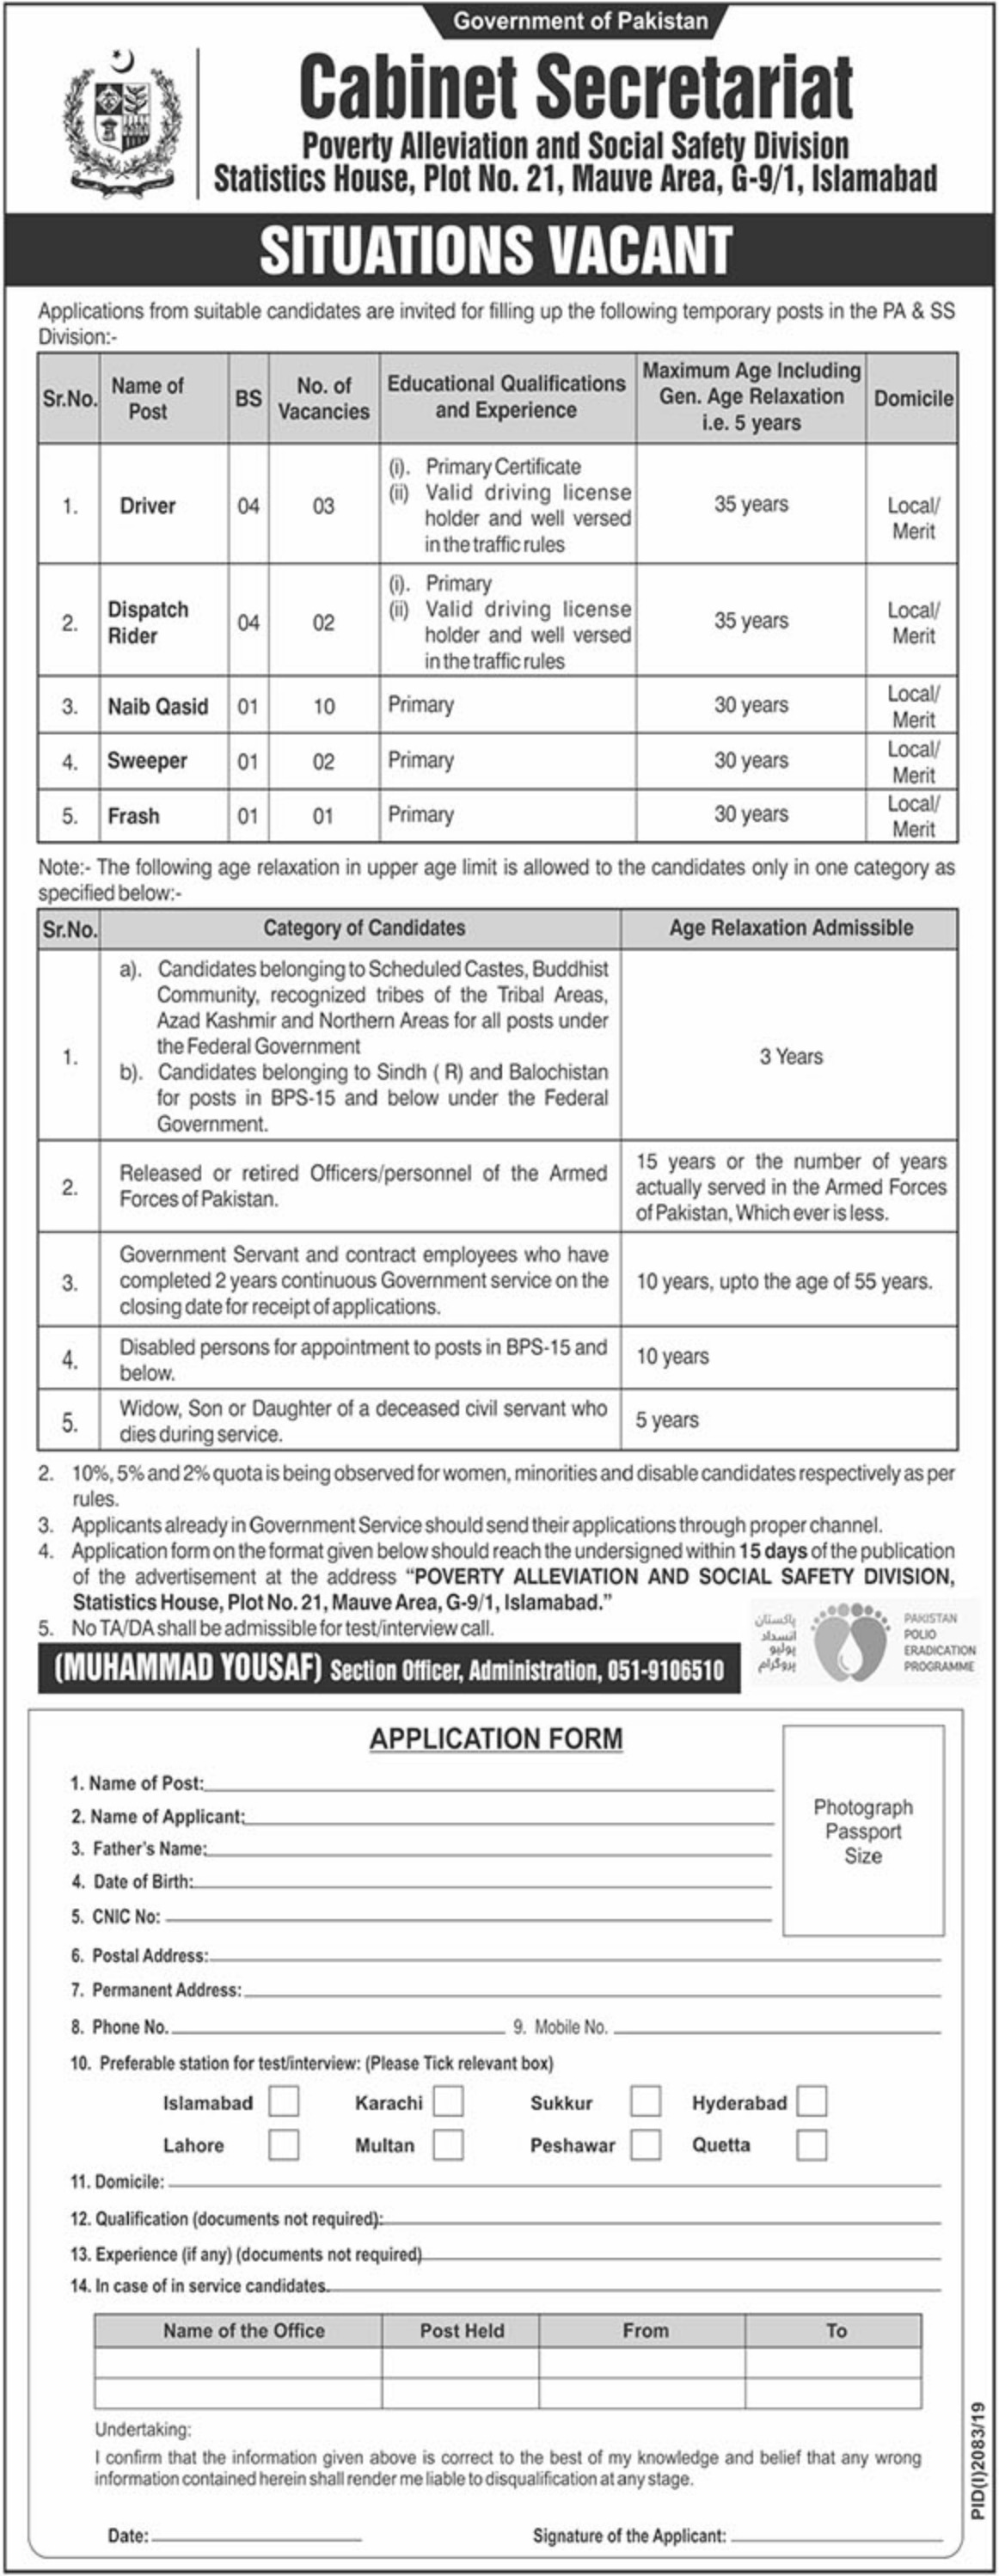 Cabinet Division Islamabad Jobs 2019 PakistanCabinet Division Islamabad Jobs 2019 Pakistan